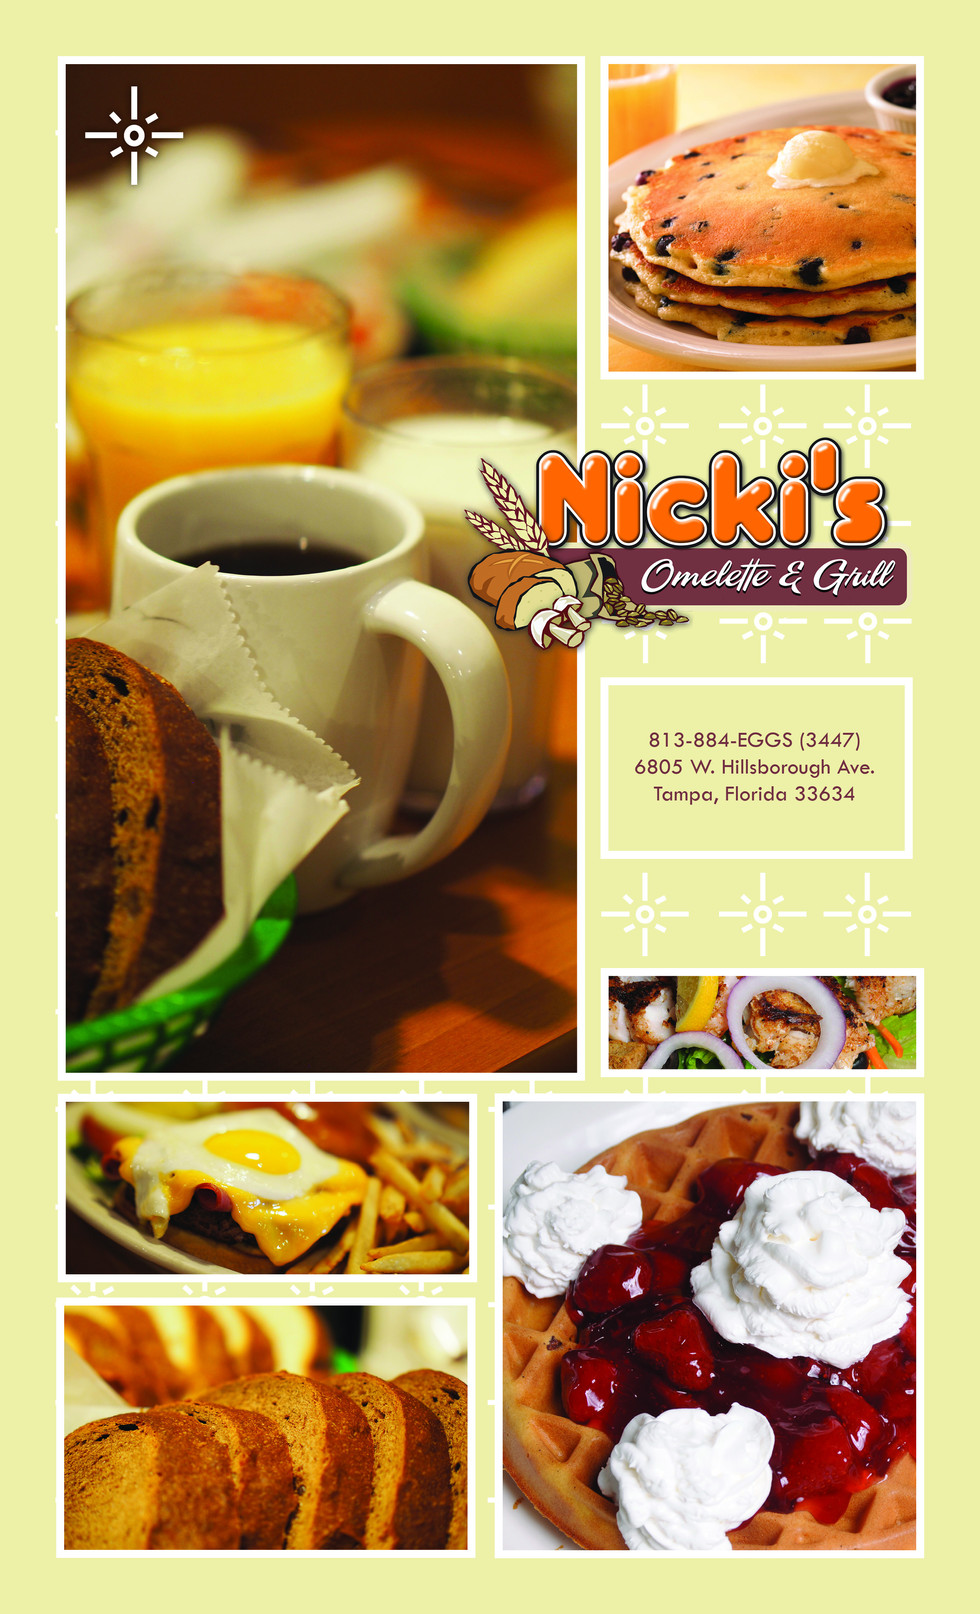 Nicki's Omelette & Grill - Back Page